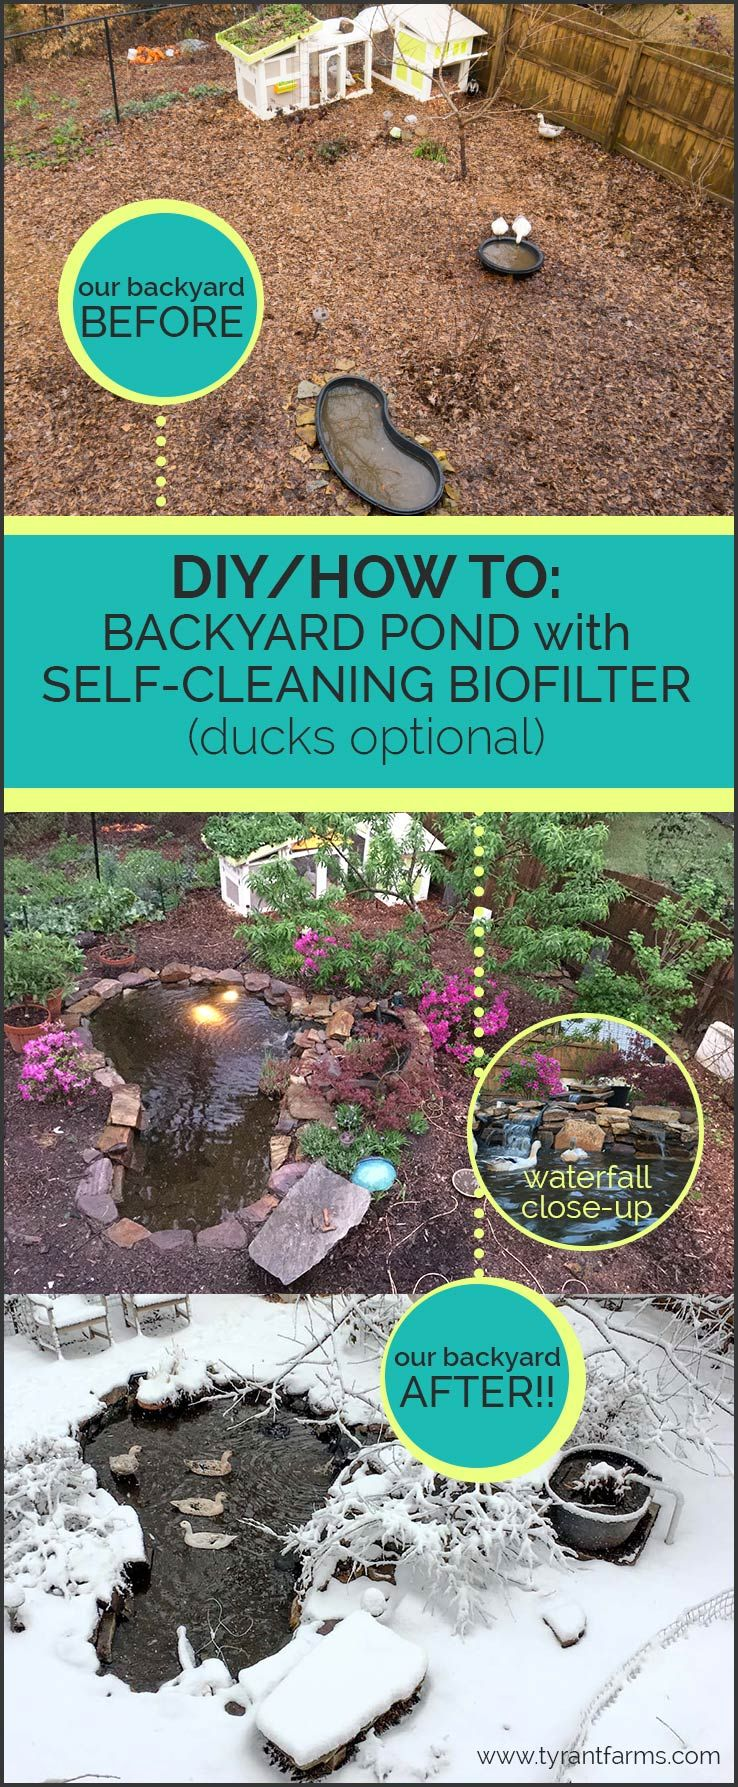 DIY/How To: Build a backyard pond with a self-cleaning biofilter ...